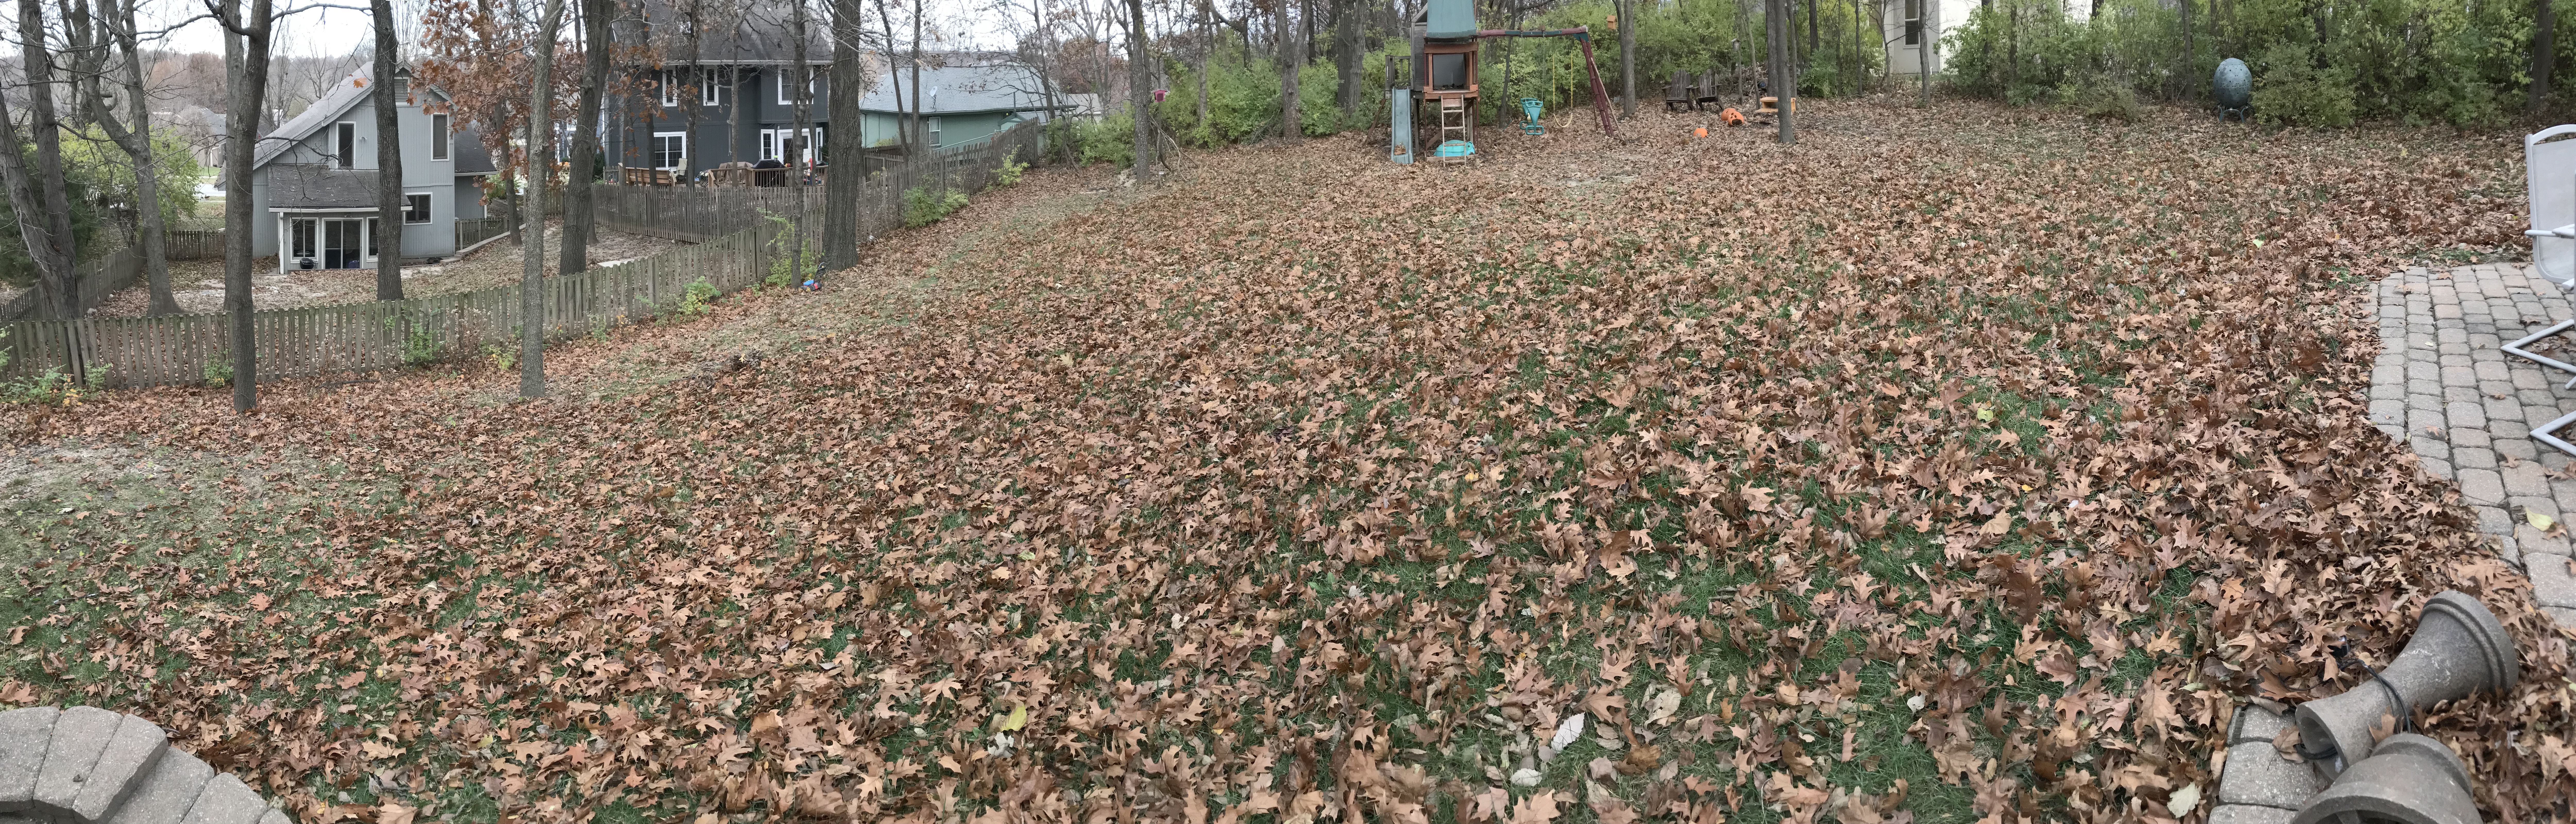 Time to Rake the Leaves